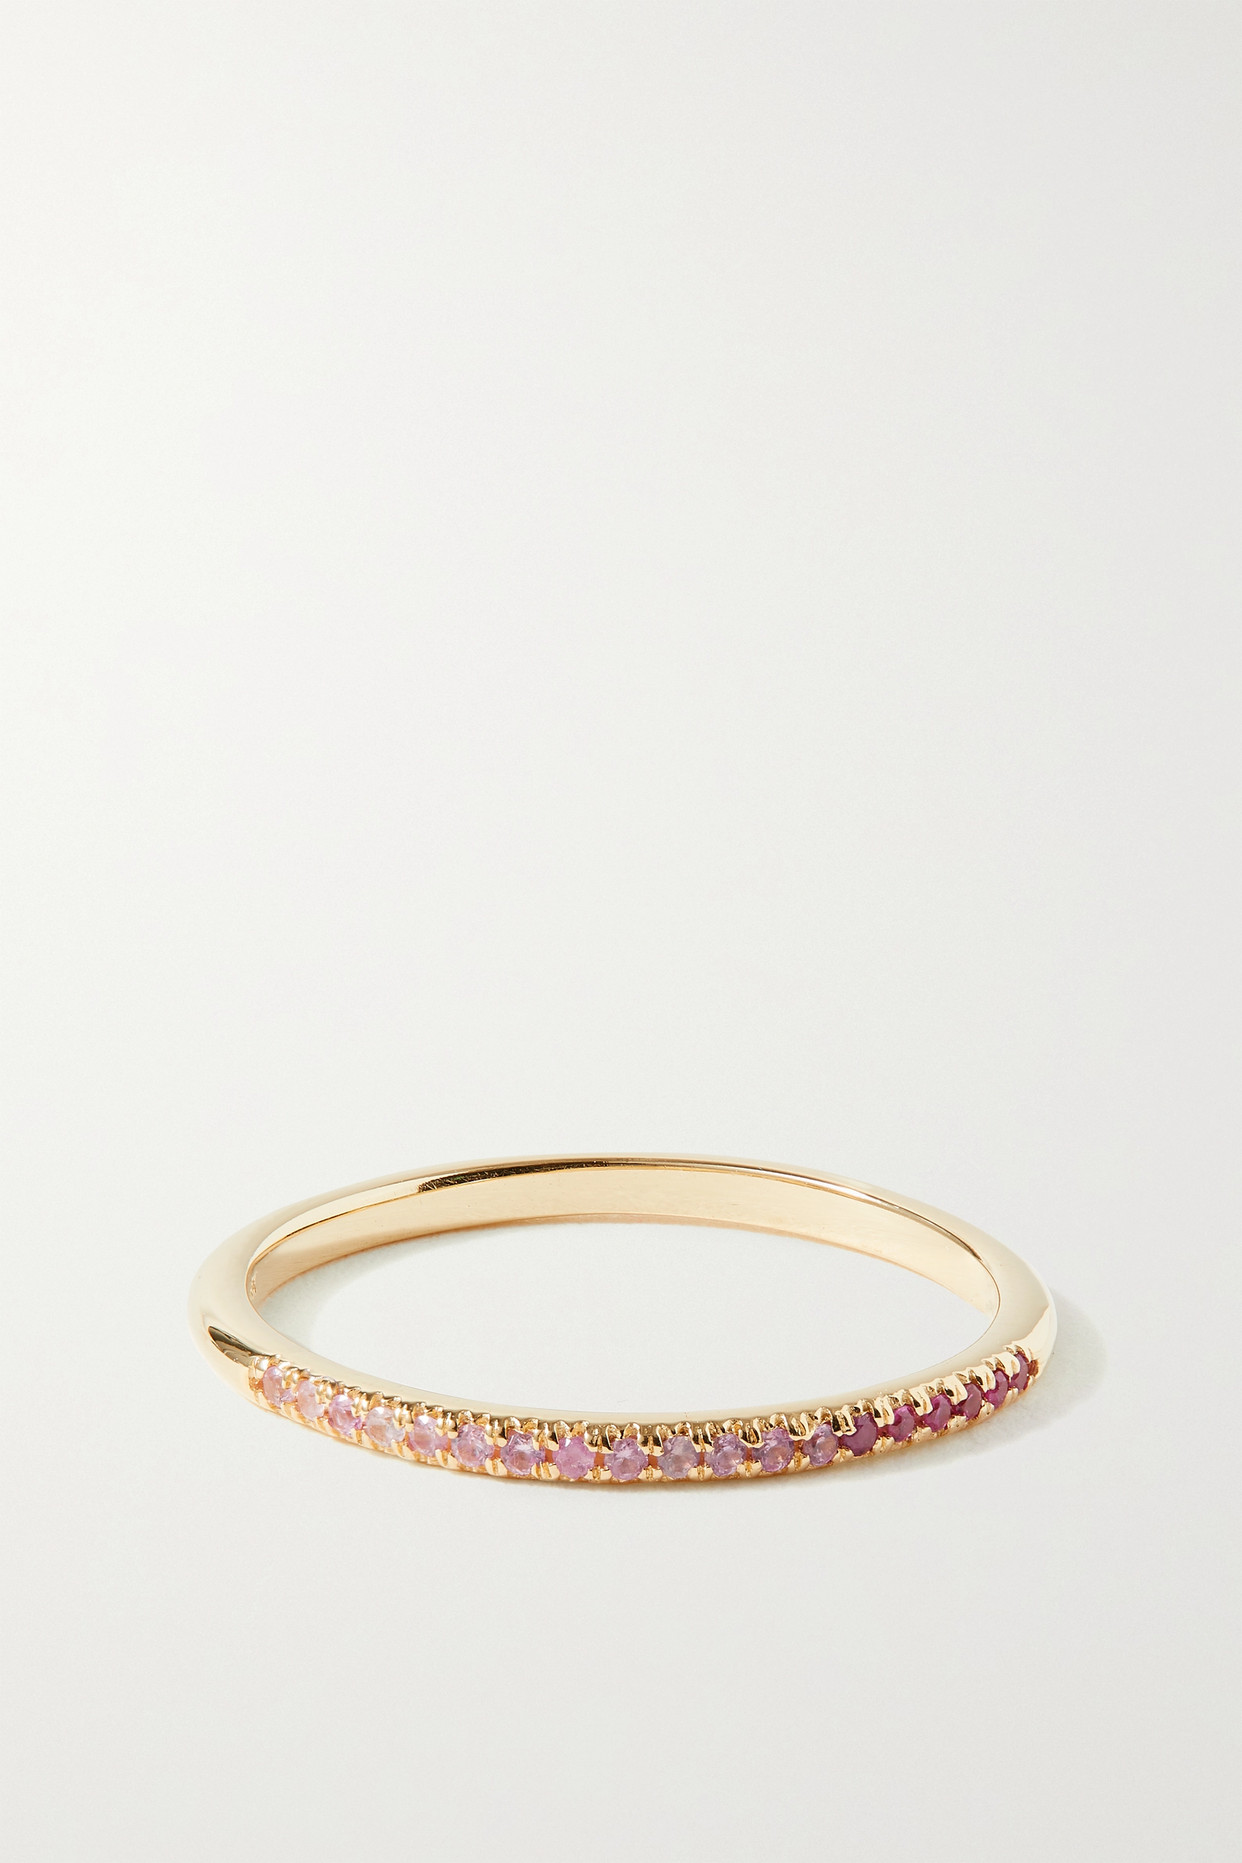 Stone And Strand 14-karat Gold Sapphire Ring In Pink